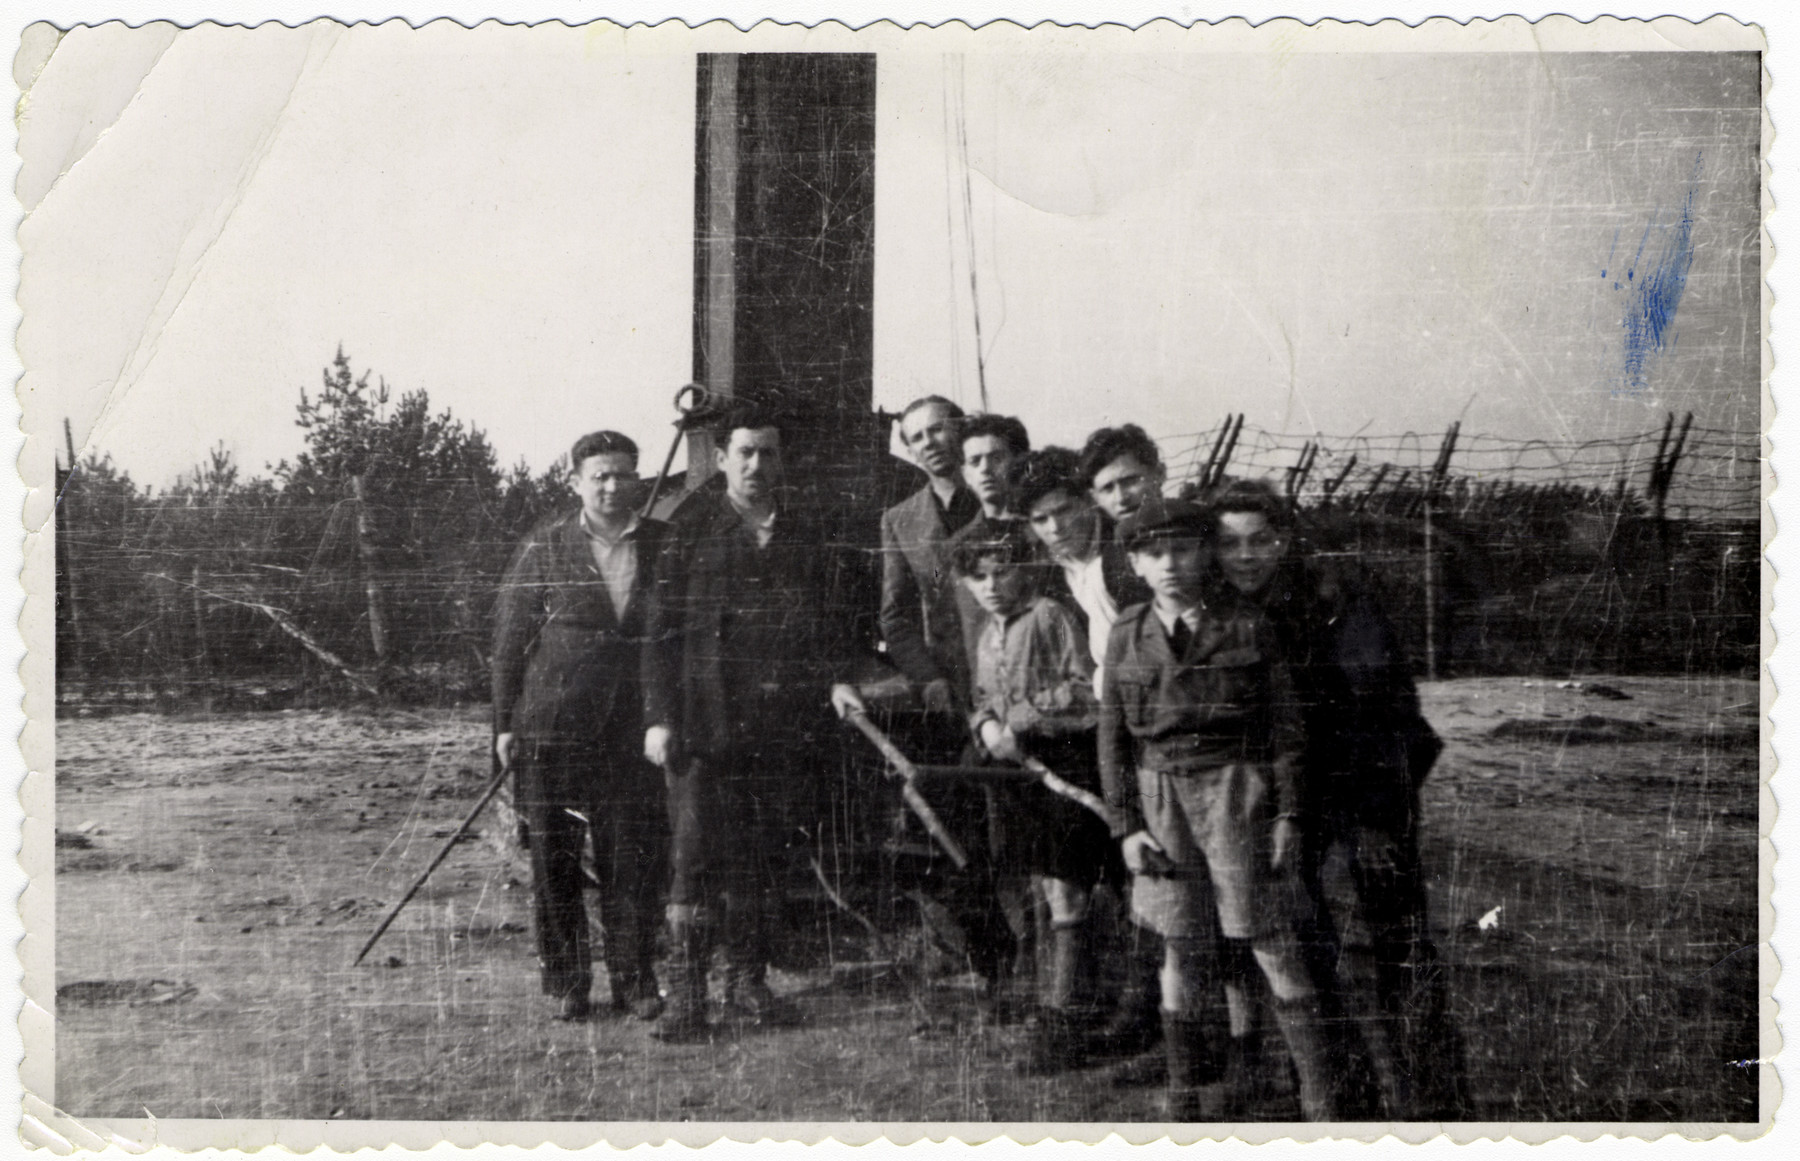 Teenagers from the Blankenesee children's home visit the grounds of the former Bergen-Belsen concentration camp.  George is kneeling on the far right.